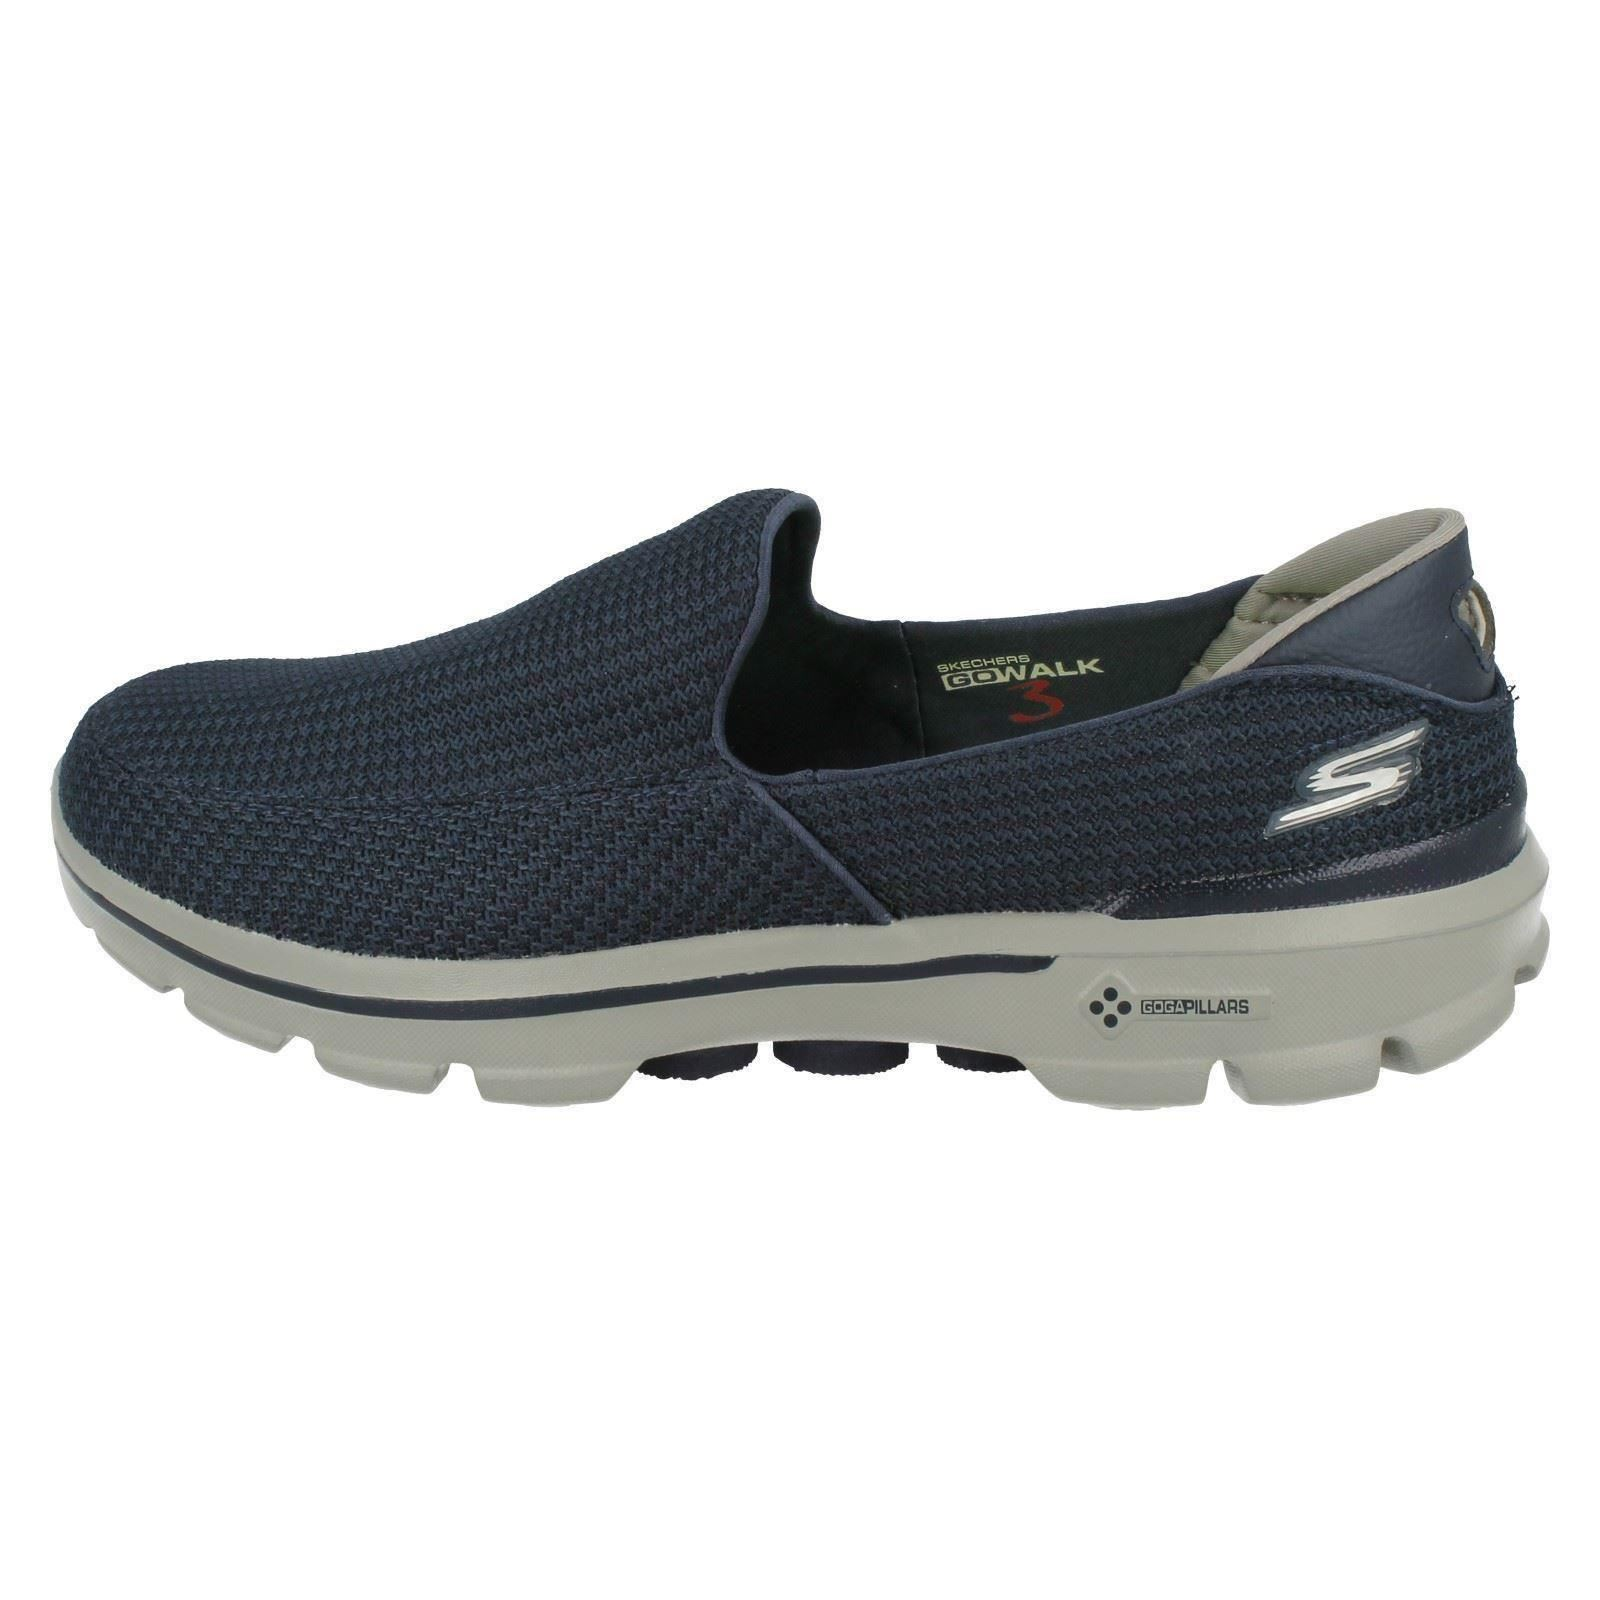 3 Go Walk grå 53980 Mens Skechers Pumps Casual blå Navy wgtaqO